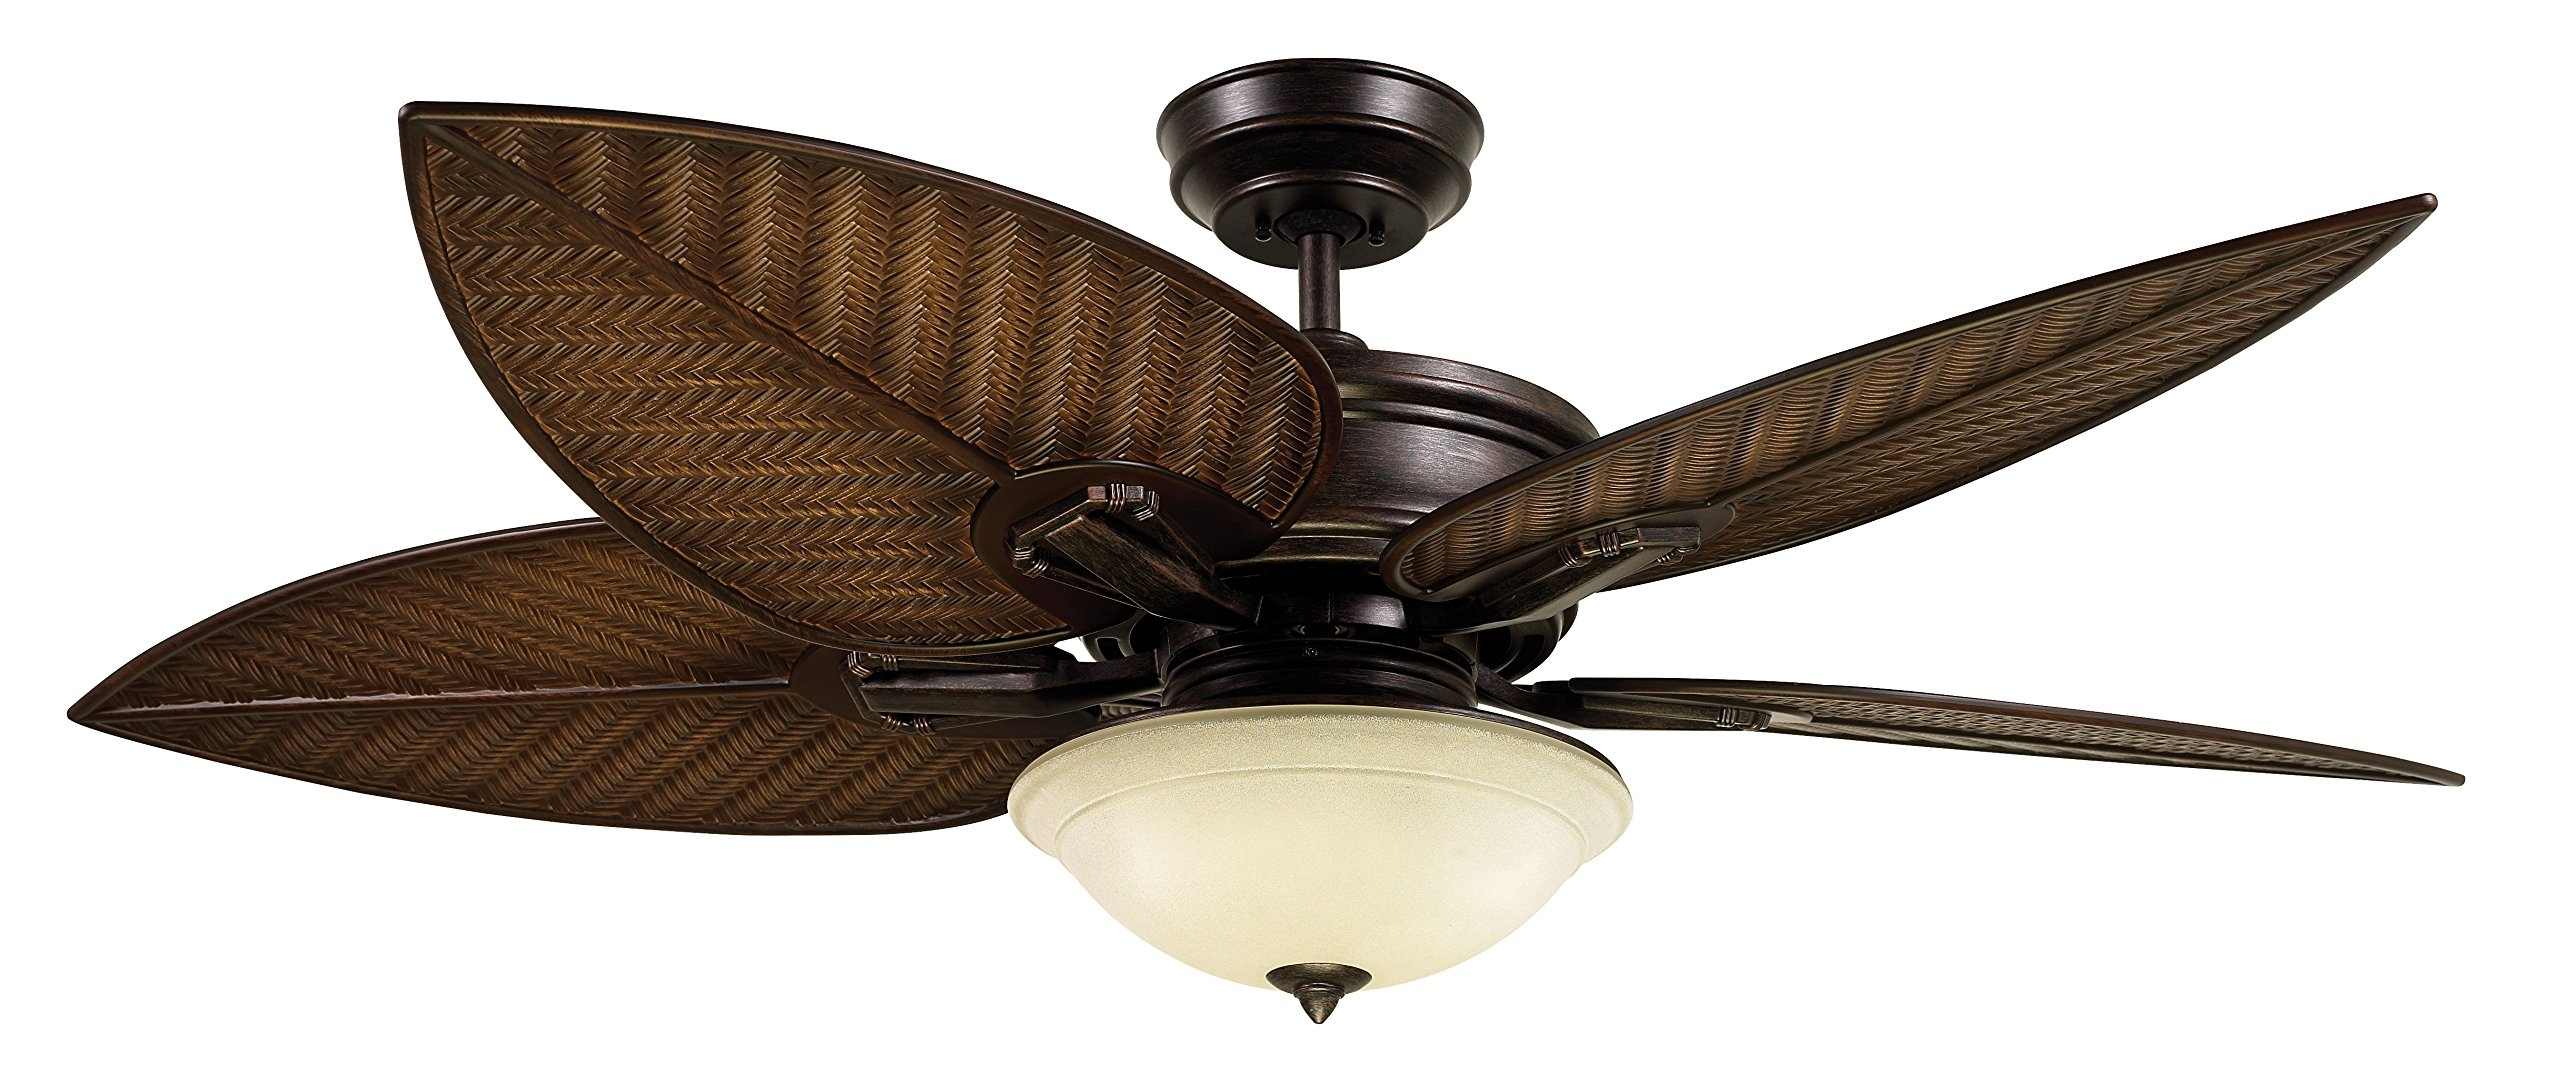 Cheap Outdoor Ceiling Fan, Find Outdoor Ceiling Fan Deals On Line At Within Most Up To Date Casa Vieja Outdoor Ceiling Fans (View 13 of 20)